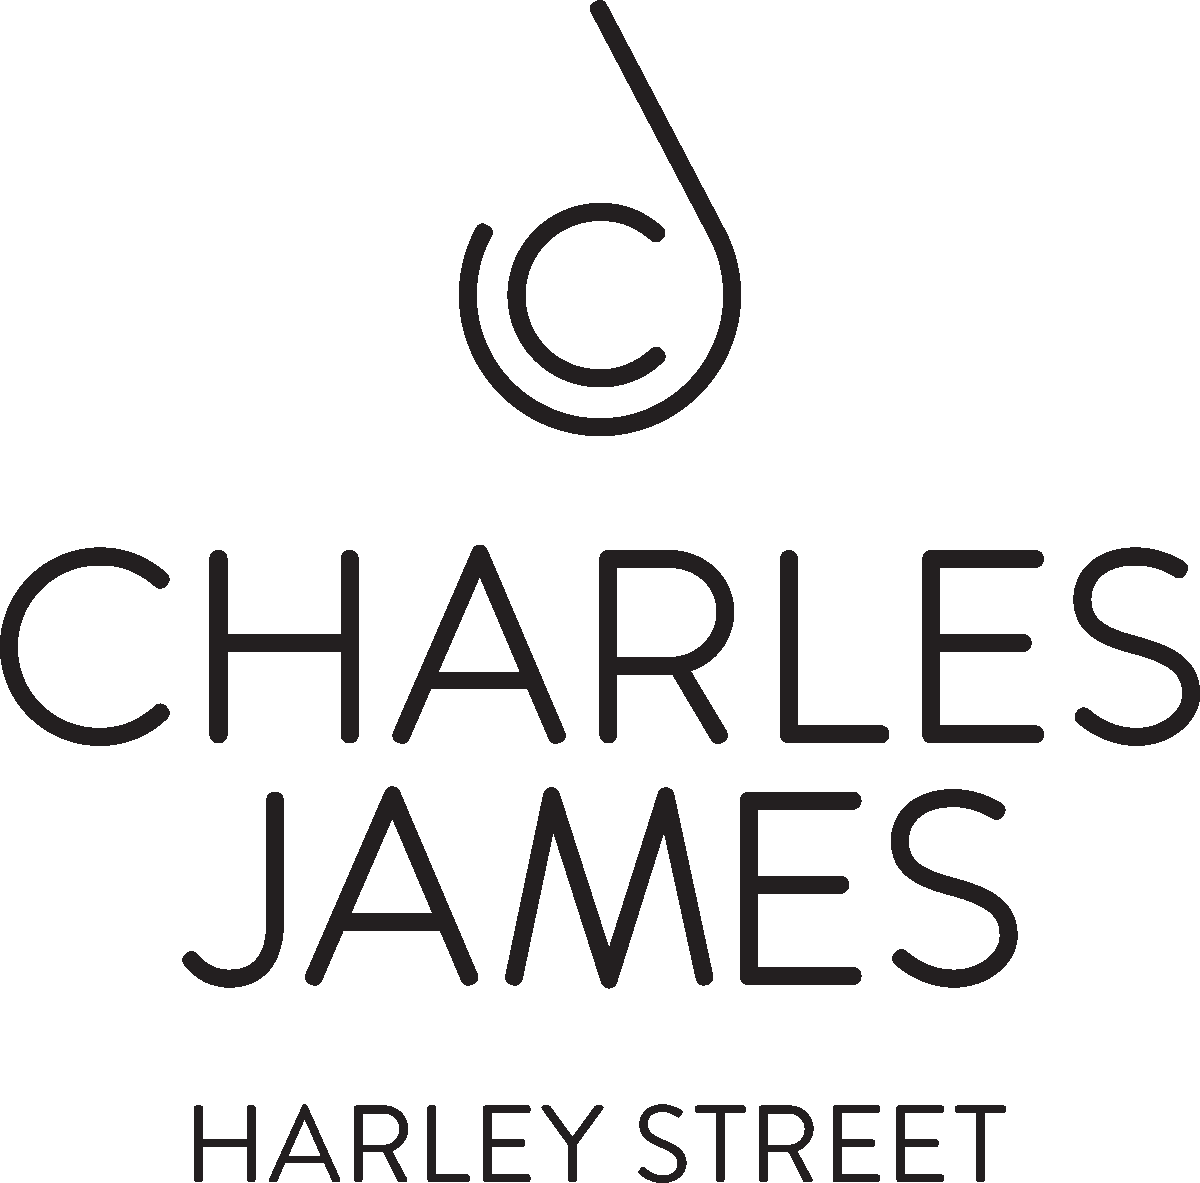 Read Charles James Harley Street Reviews